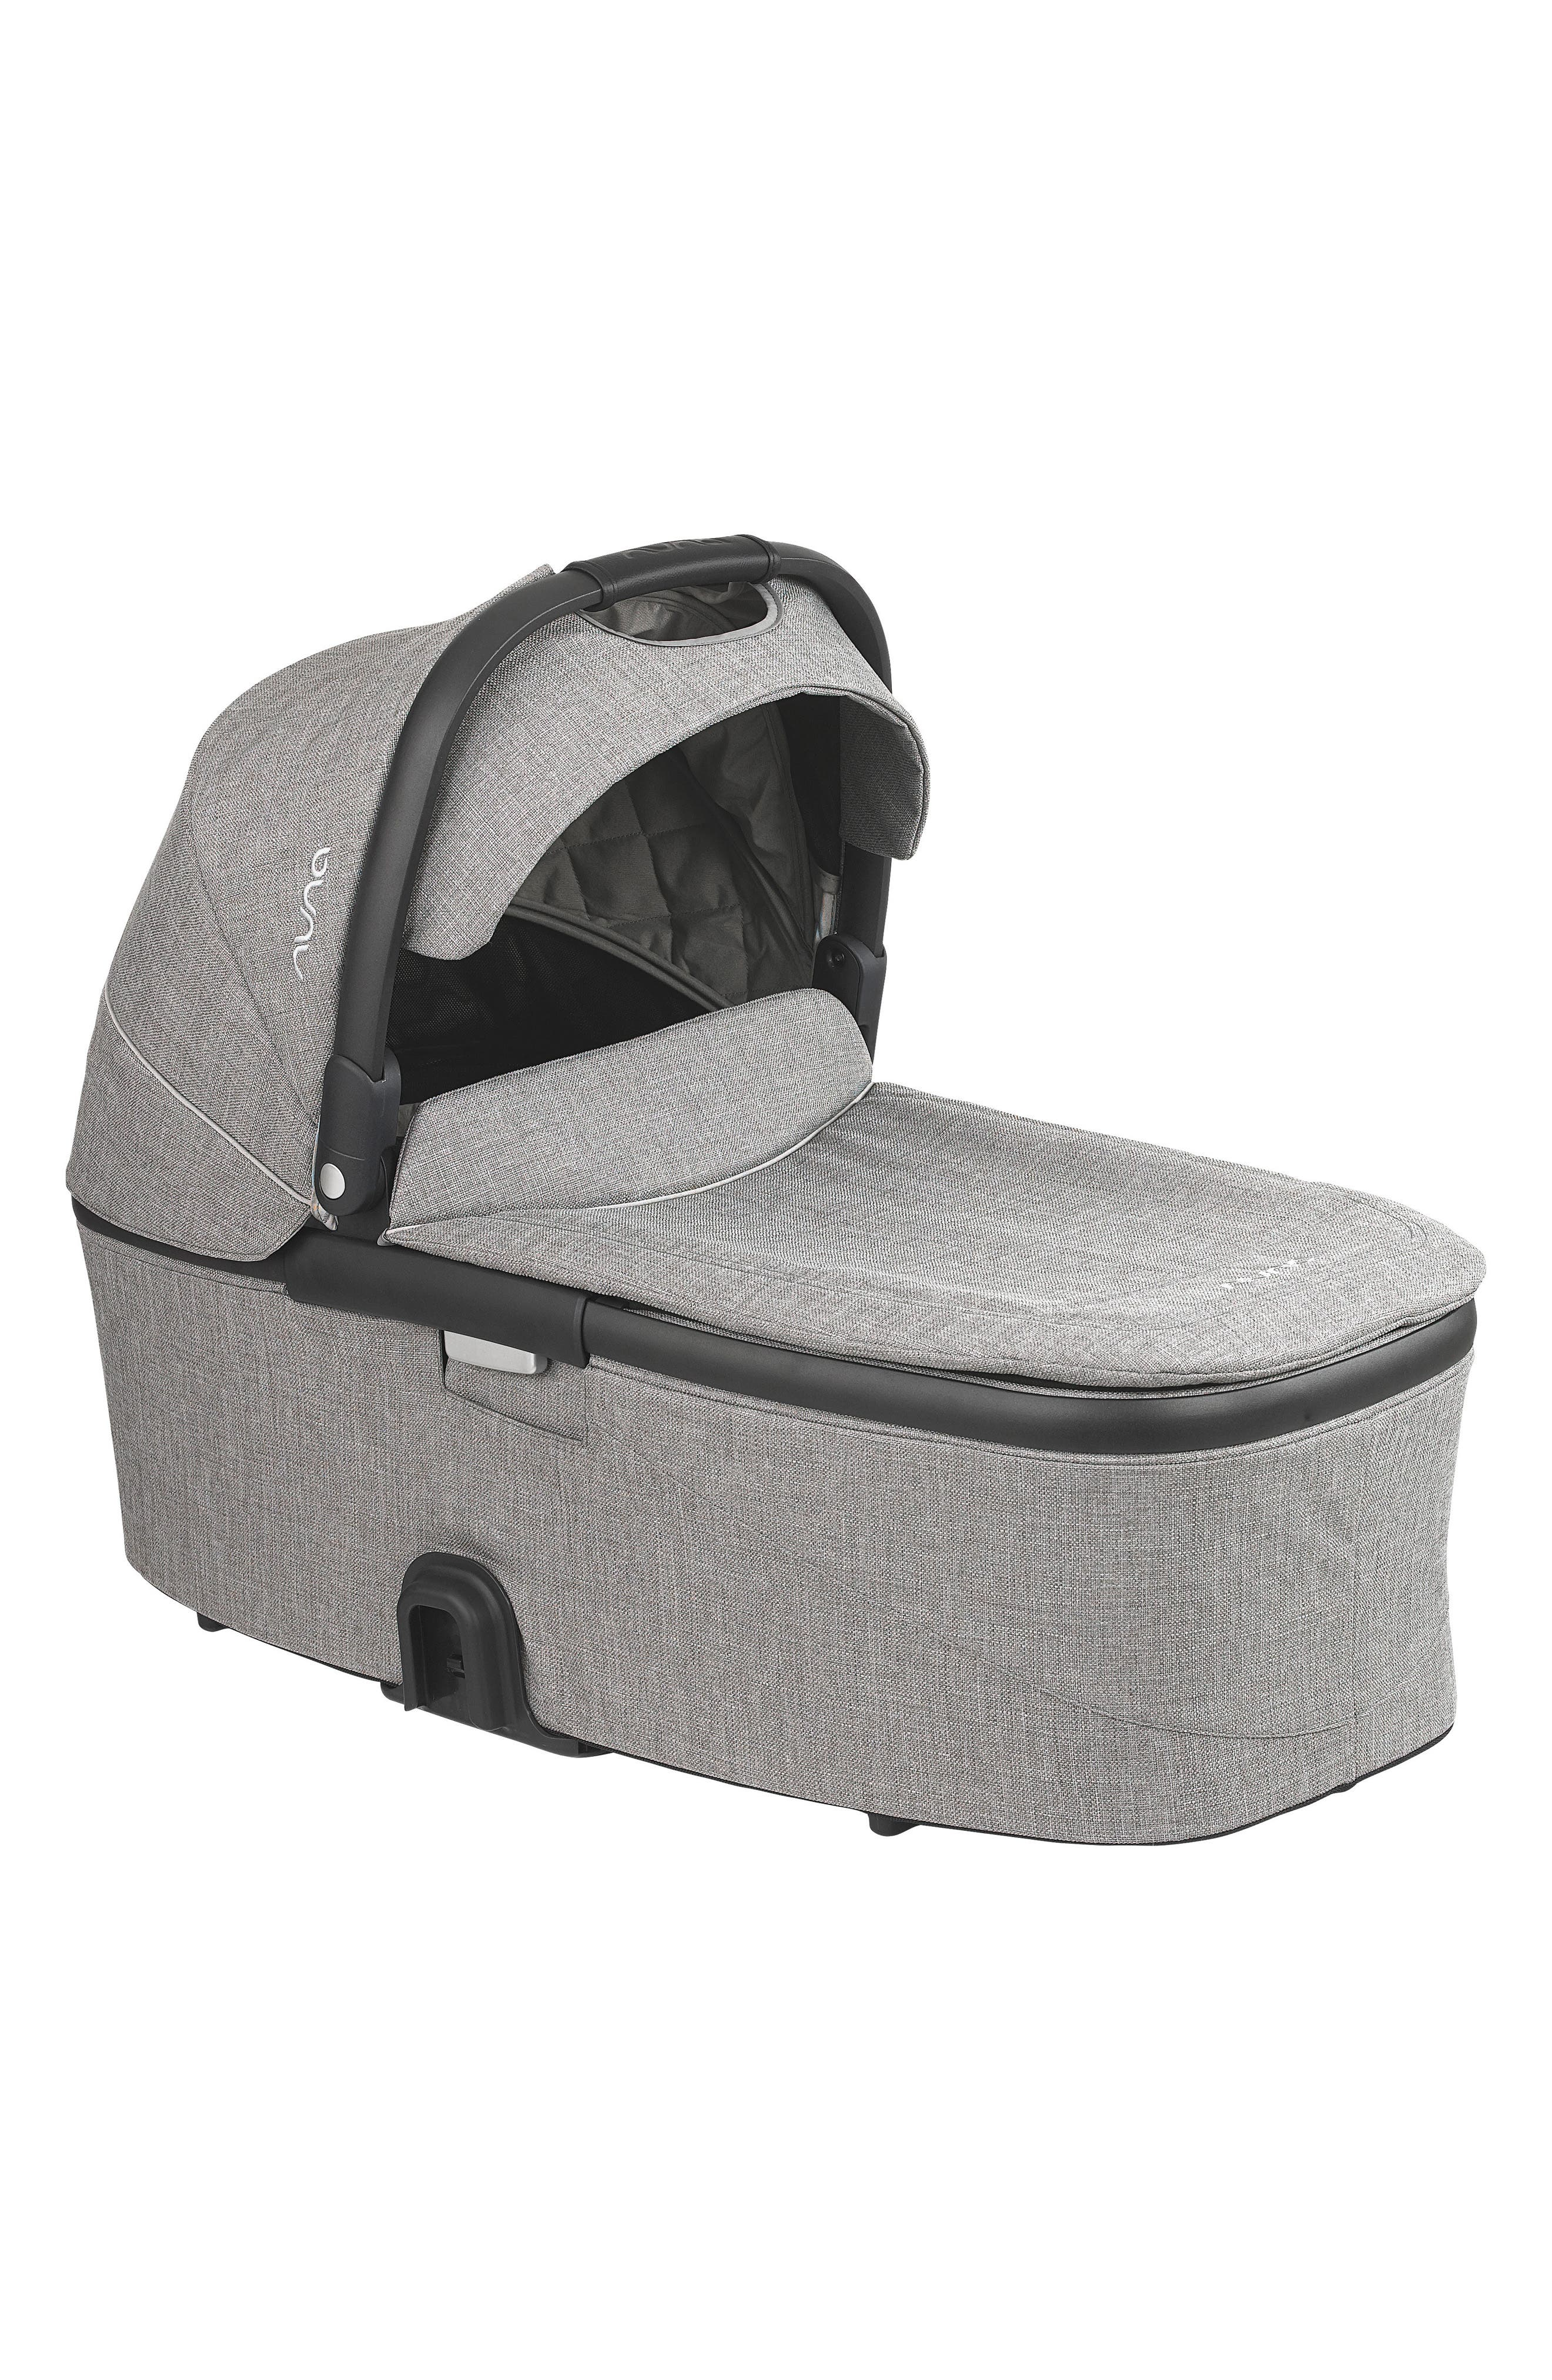 DEMI<sup>™</sup> Grow Bassinet Attachment for DEMI<sup>™</sup> Grow Stroller,                         Main,                         color, Frost